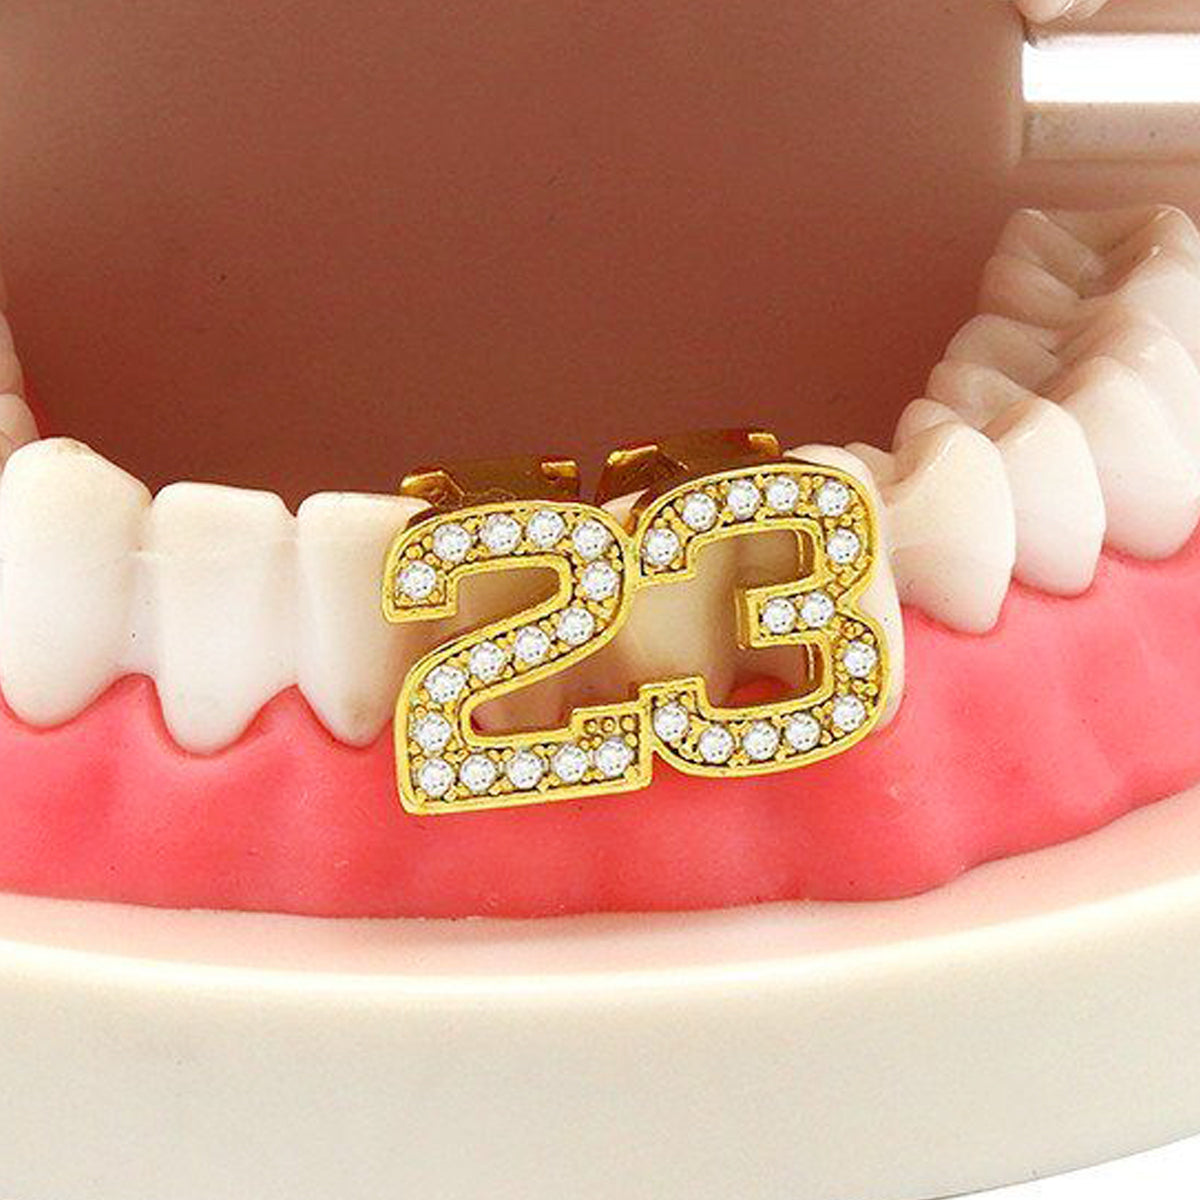 GOLD GRILLZ BOTTOM #23 CZ